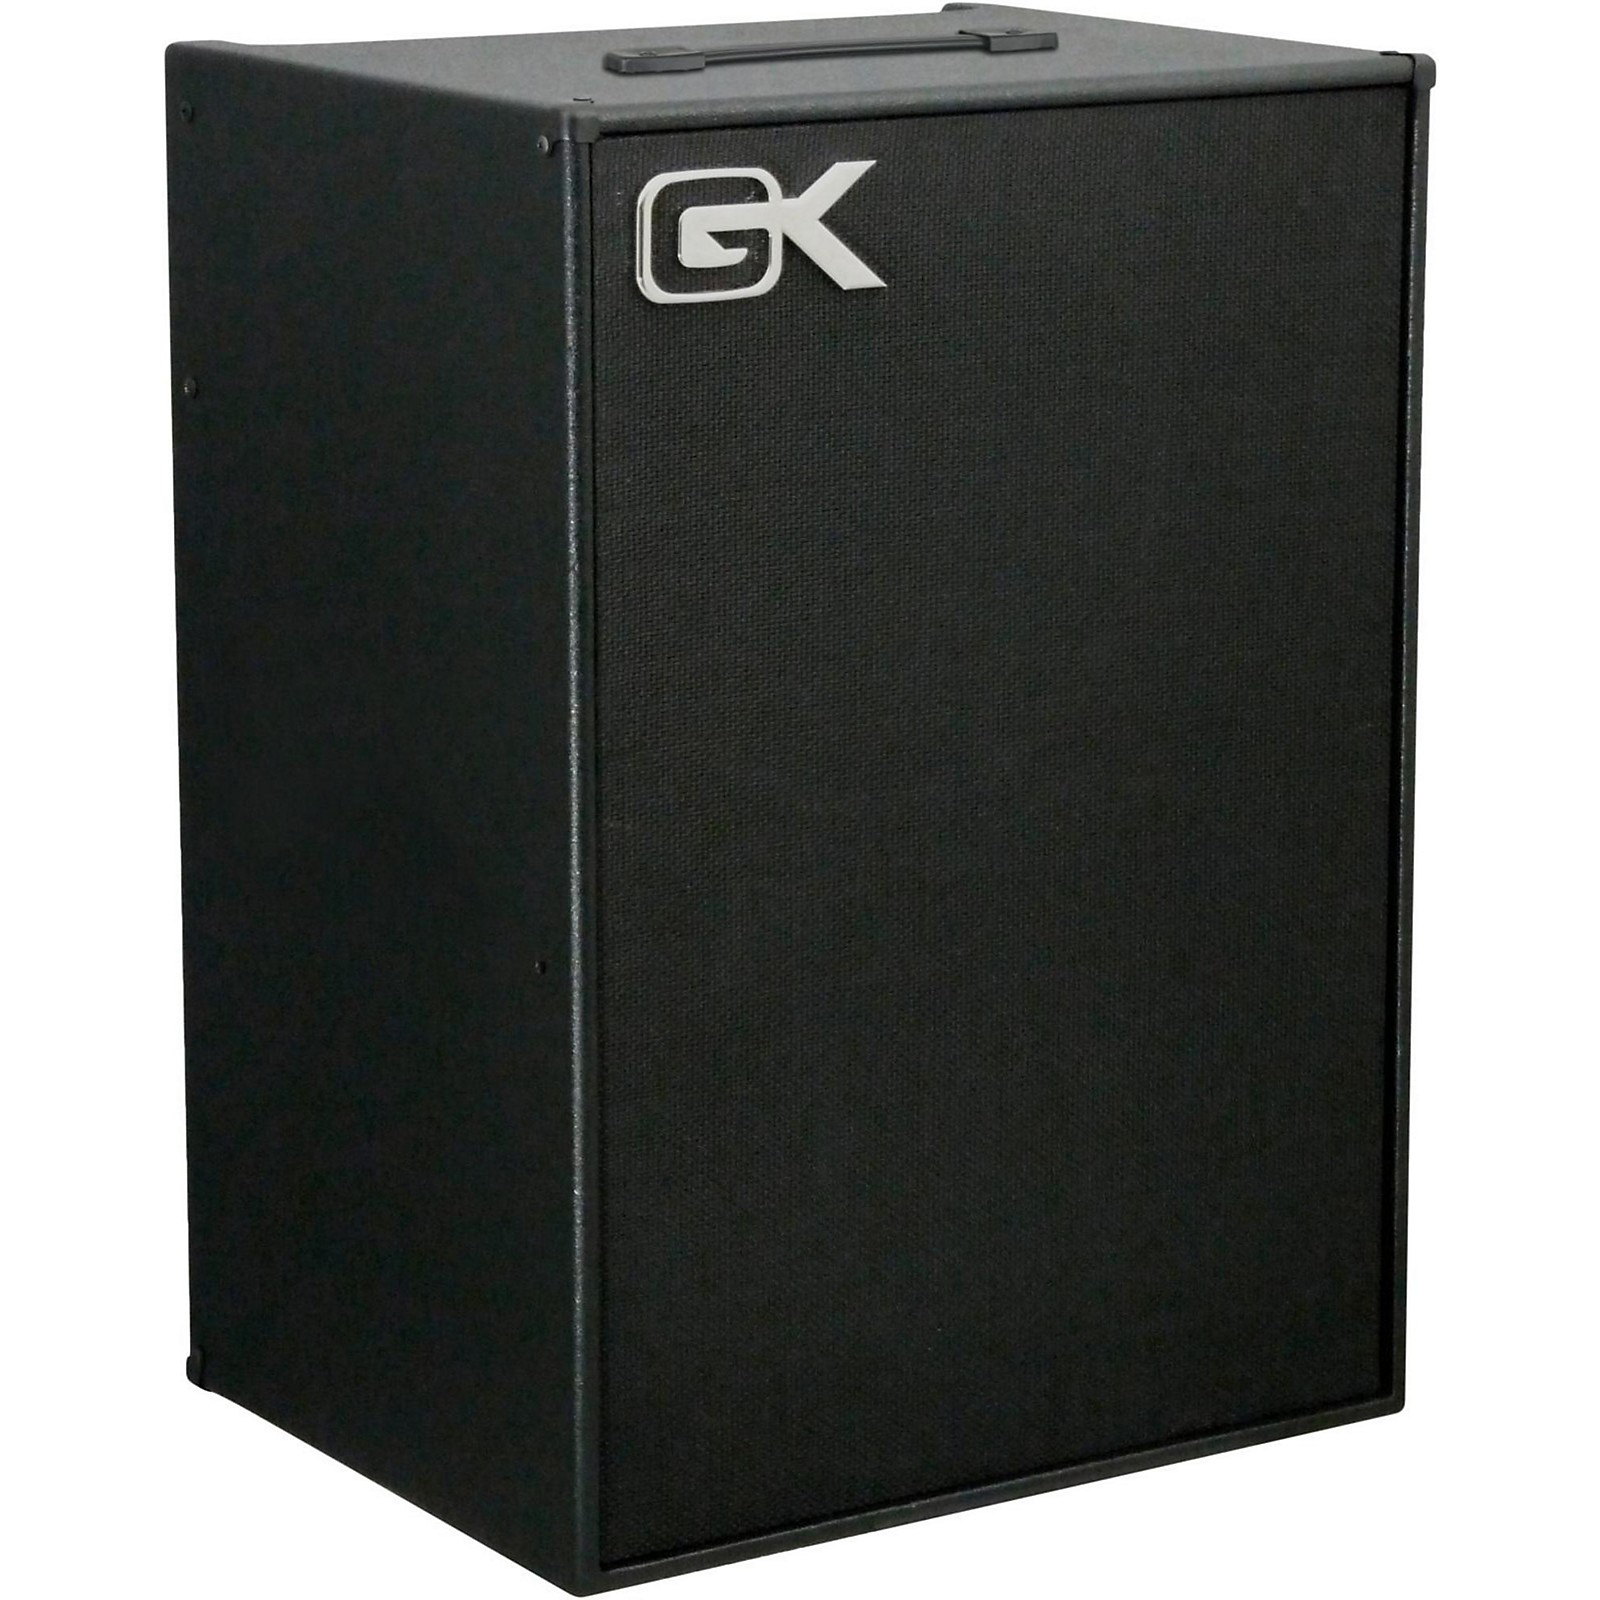 Open Box Gallien-Krueger MB212-II 500W 2x12 Bass Combo Amp with Tolex Covering